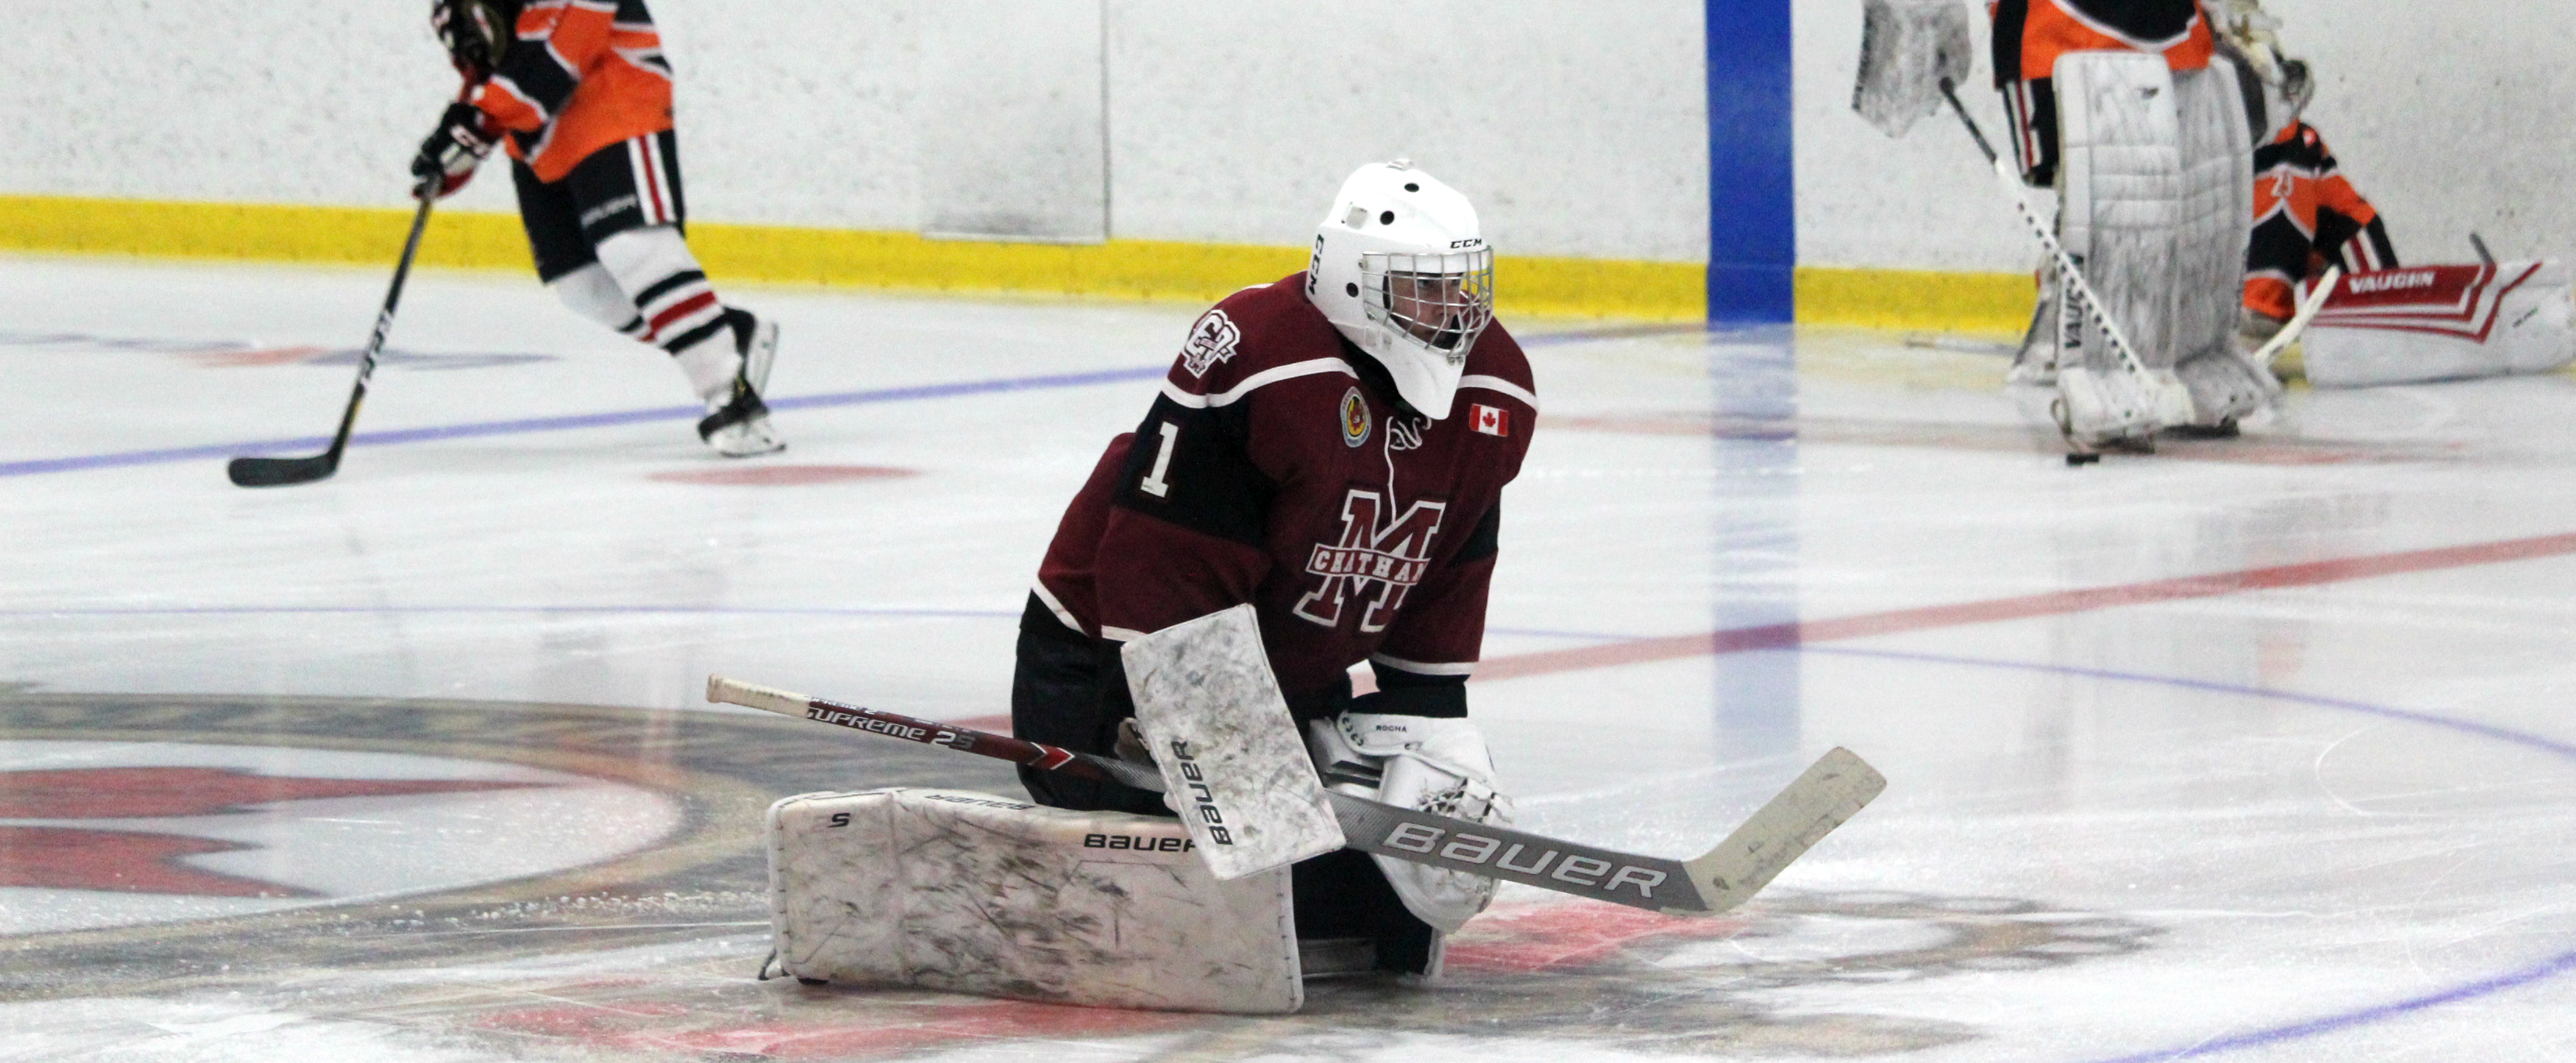 Chatham Maroons goalie Tiago Rocha warms up ahead of a game against the Sarnia Legionnaires. September 2019. (Photo by Matt Weverink)